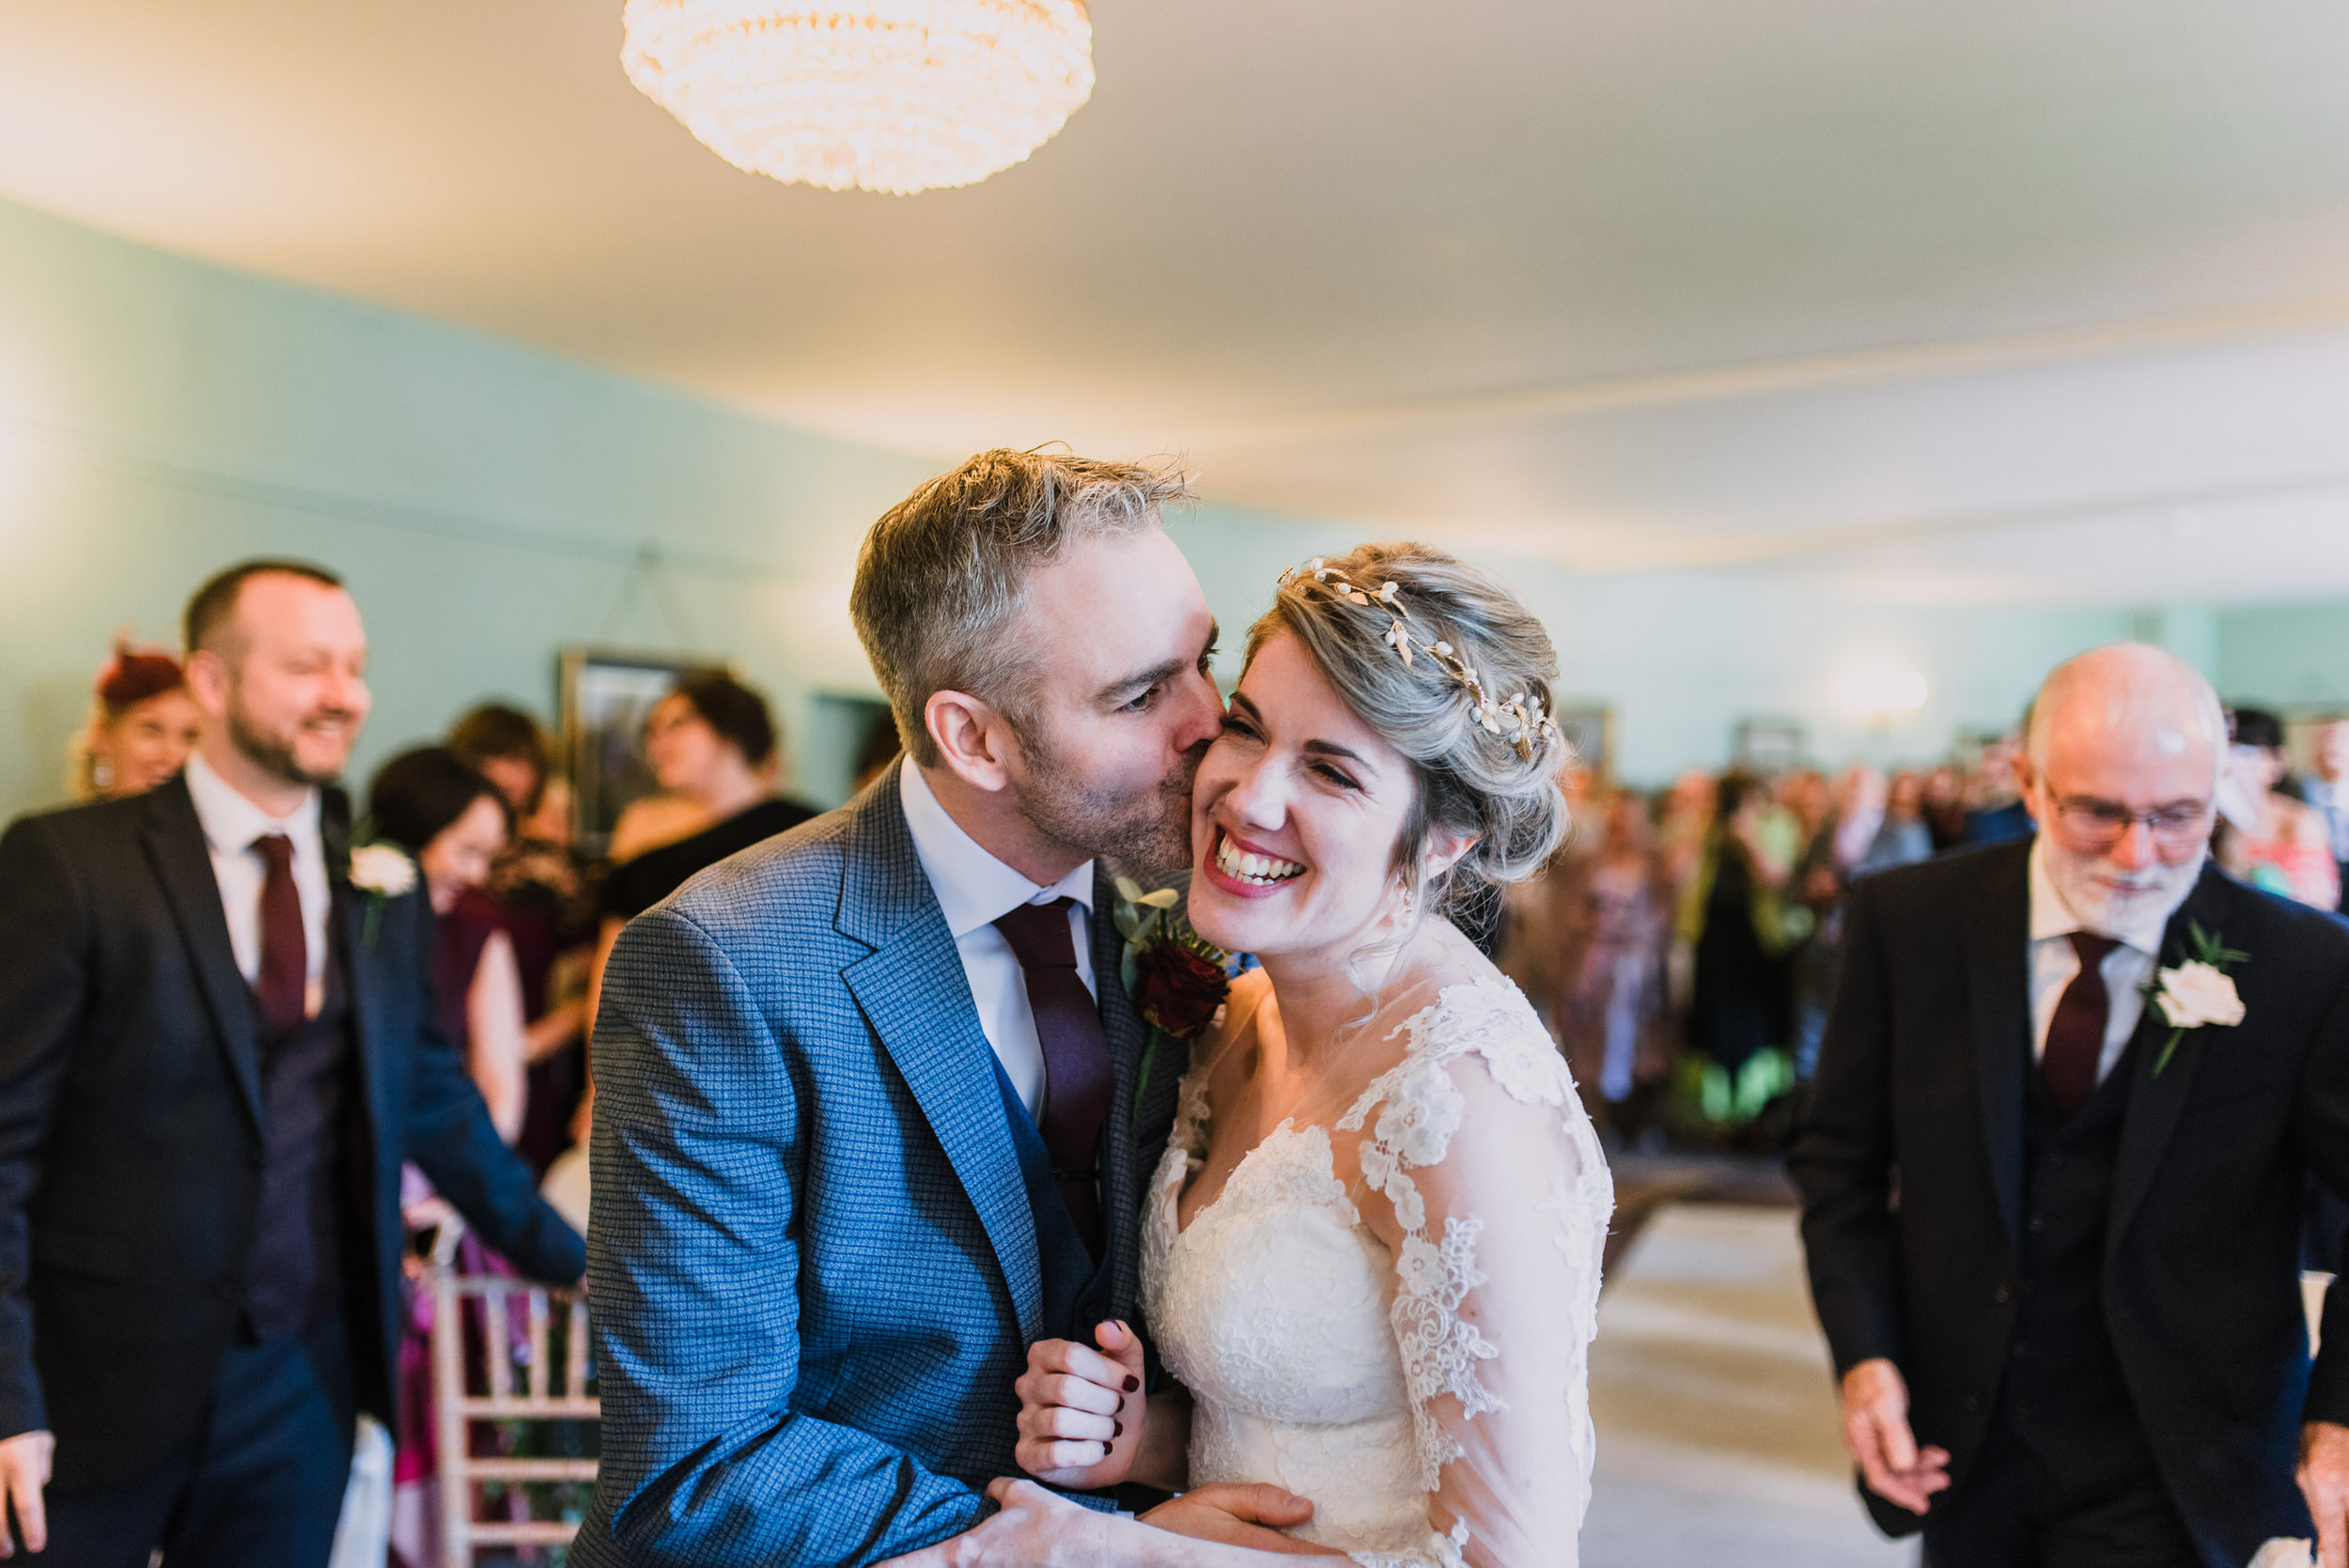 lissanoure castle wedding, northern ireland wedding photographer, romantic northern irish wedding venue, castle wedding ireland, natural wedding photography ni (59).jpg